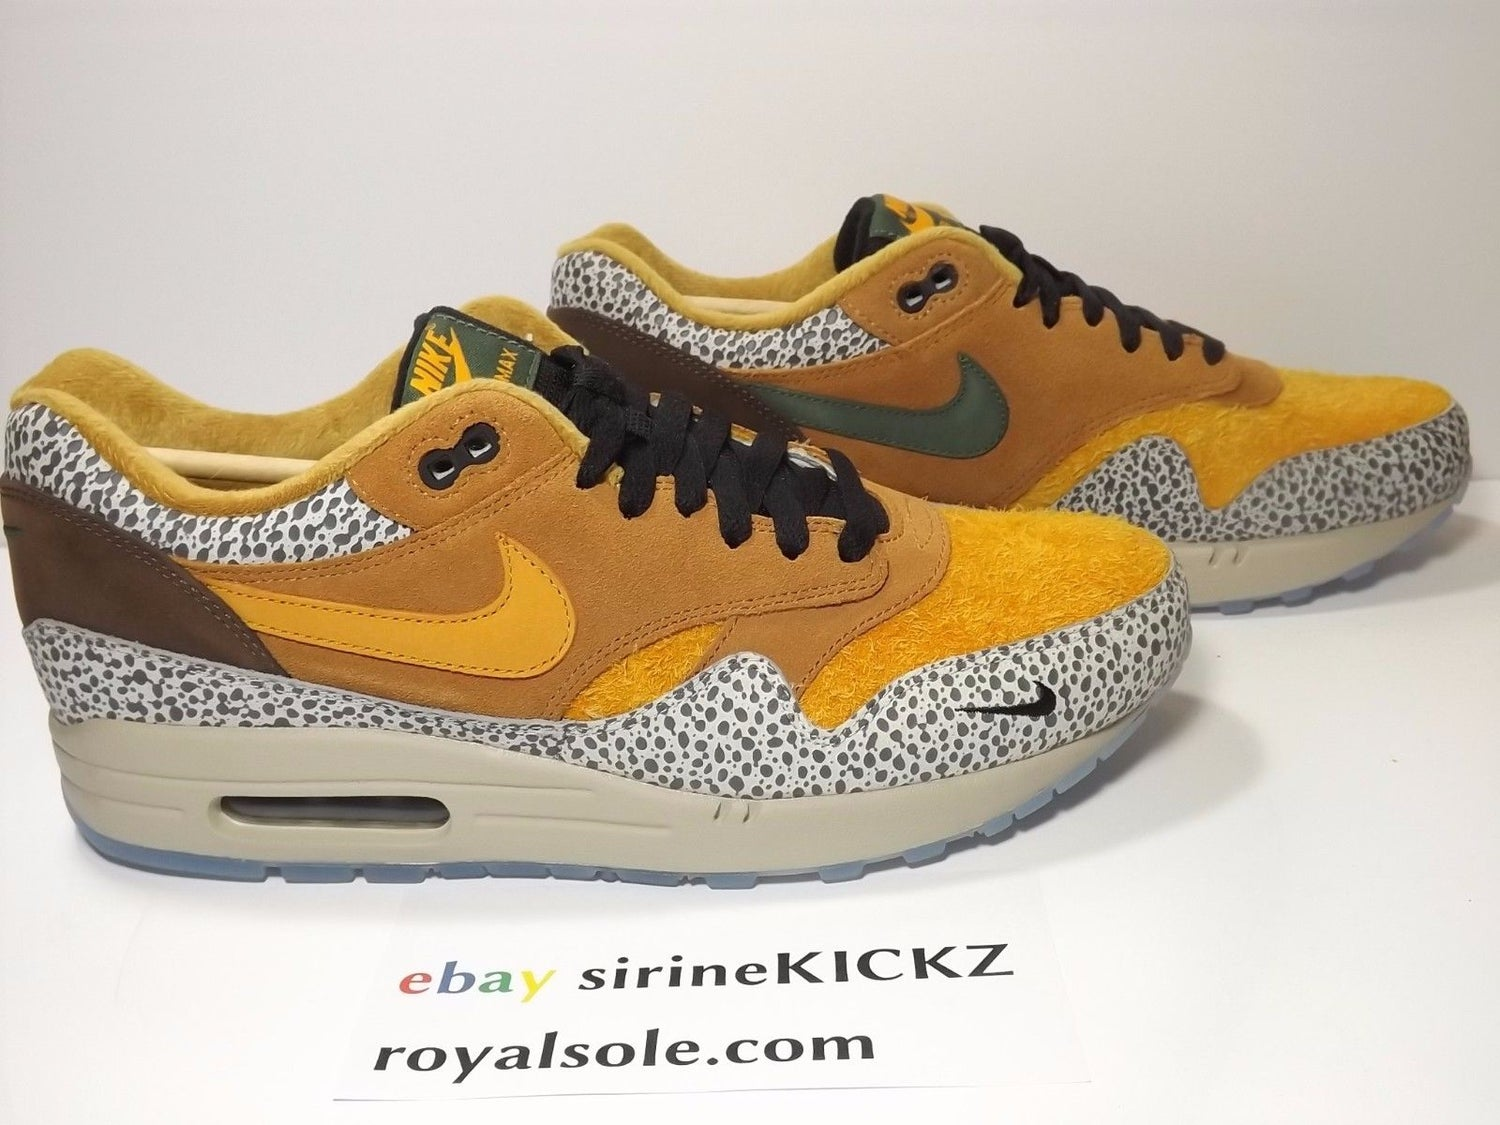 Image of Nike Air Max 1 Atmos Safari Premium QS Flax Kumquat Chestnut 665873-200